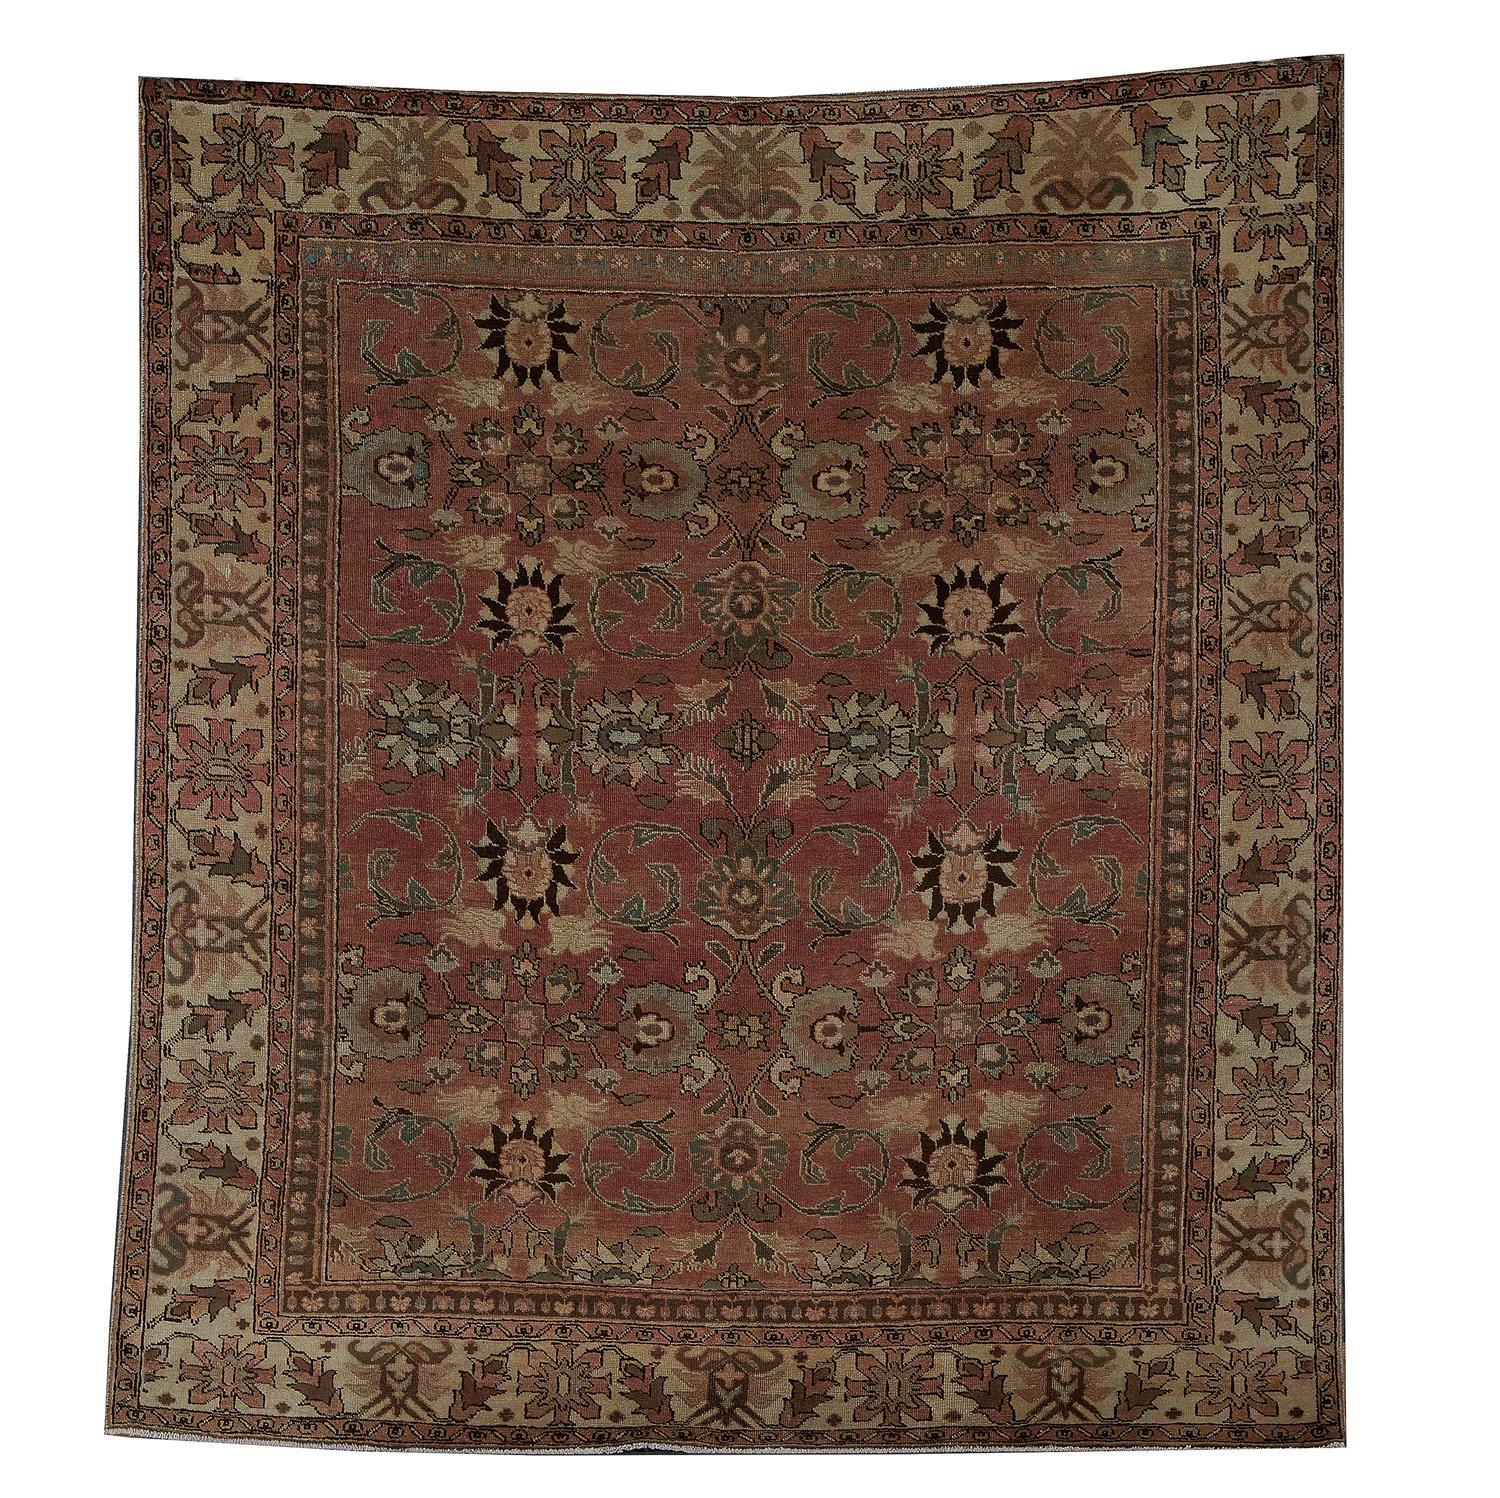 Antique Persian Khalkhal carpet